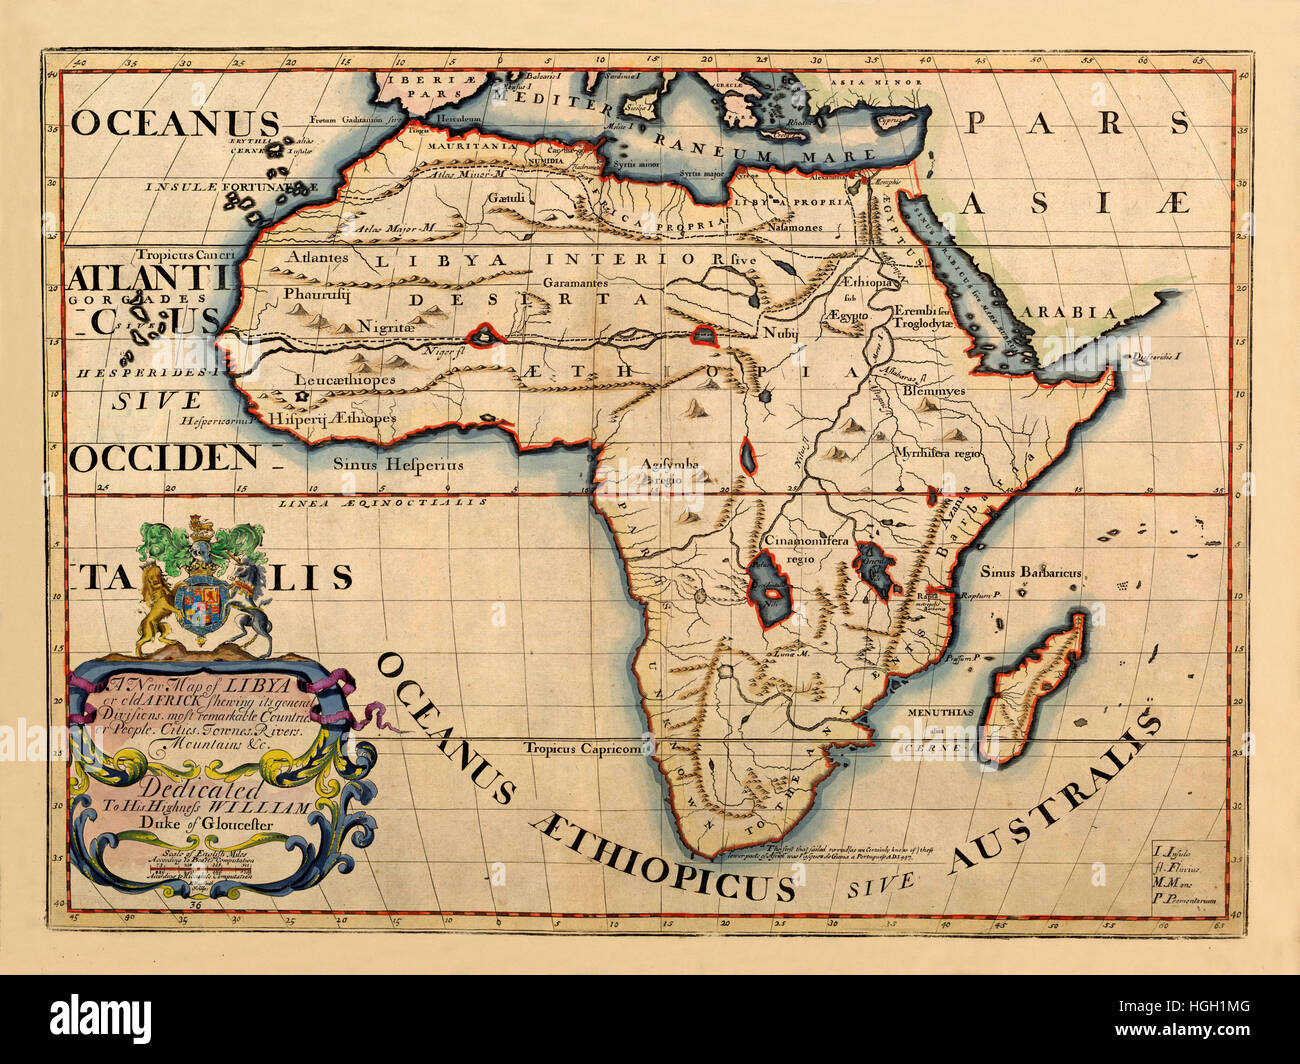 Map Of Africa In 1700 Map Of Africa 1700 Stock Photo   Alamy